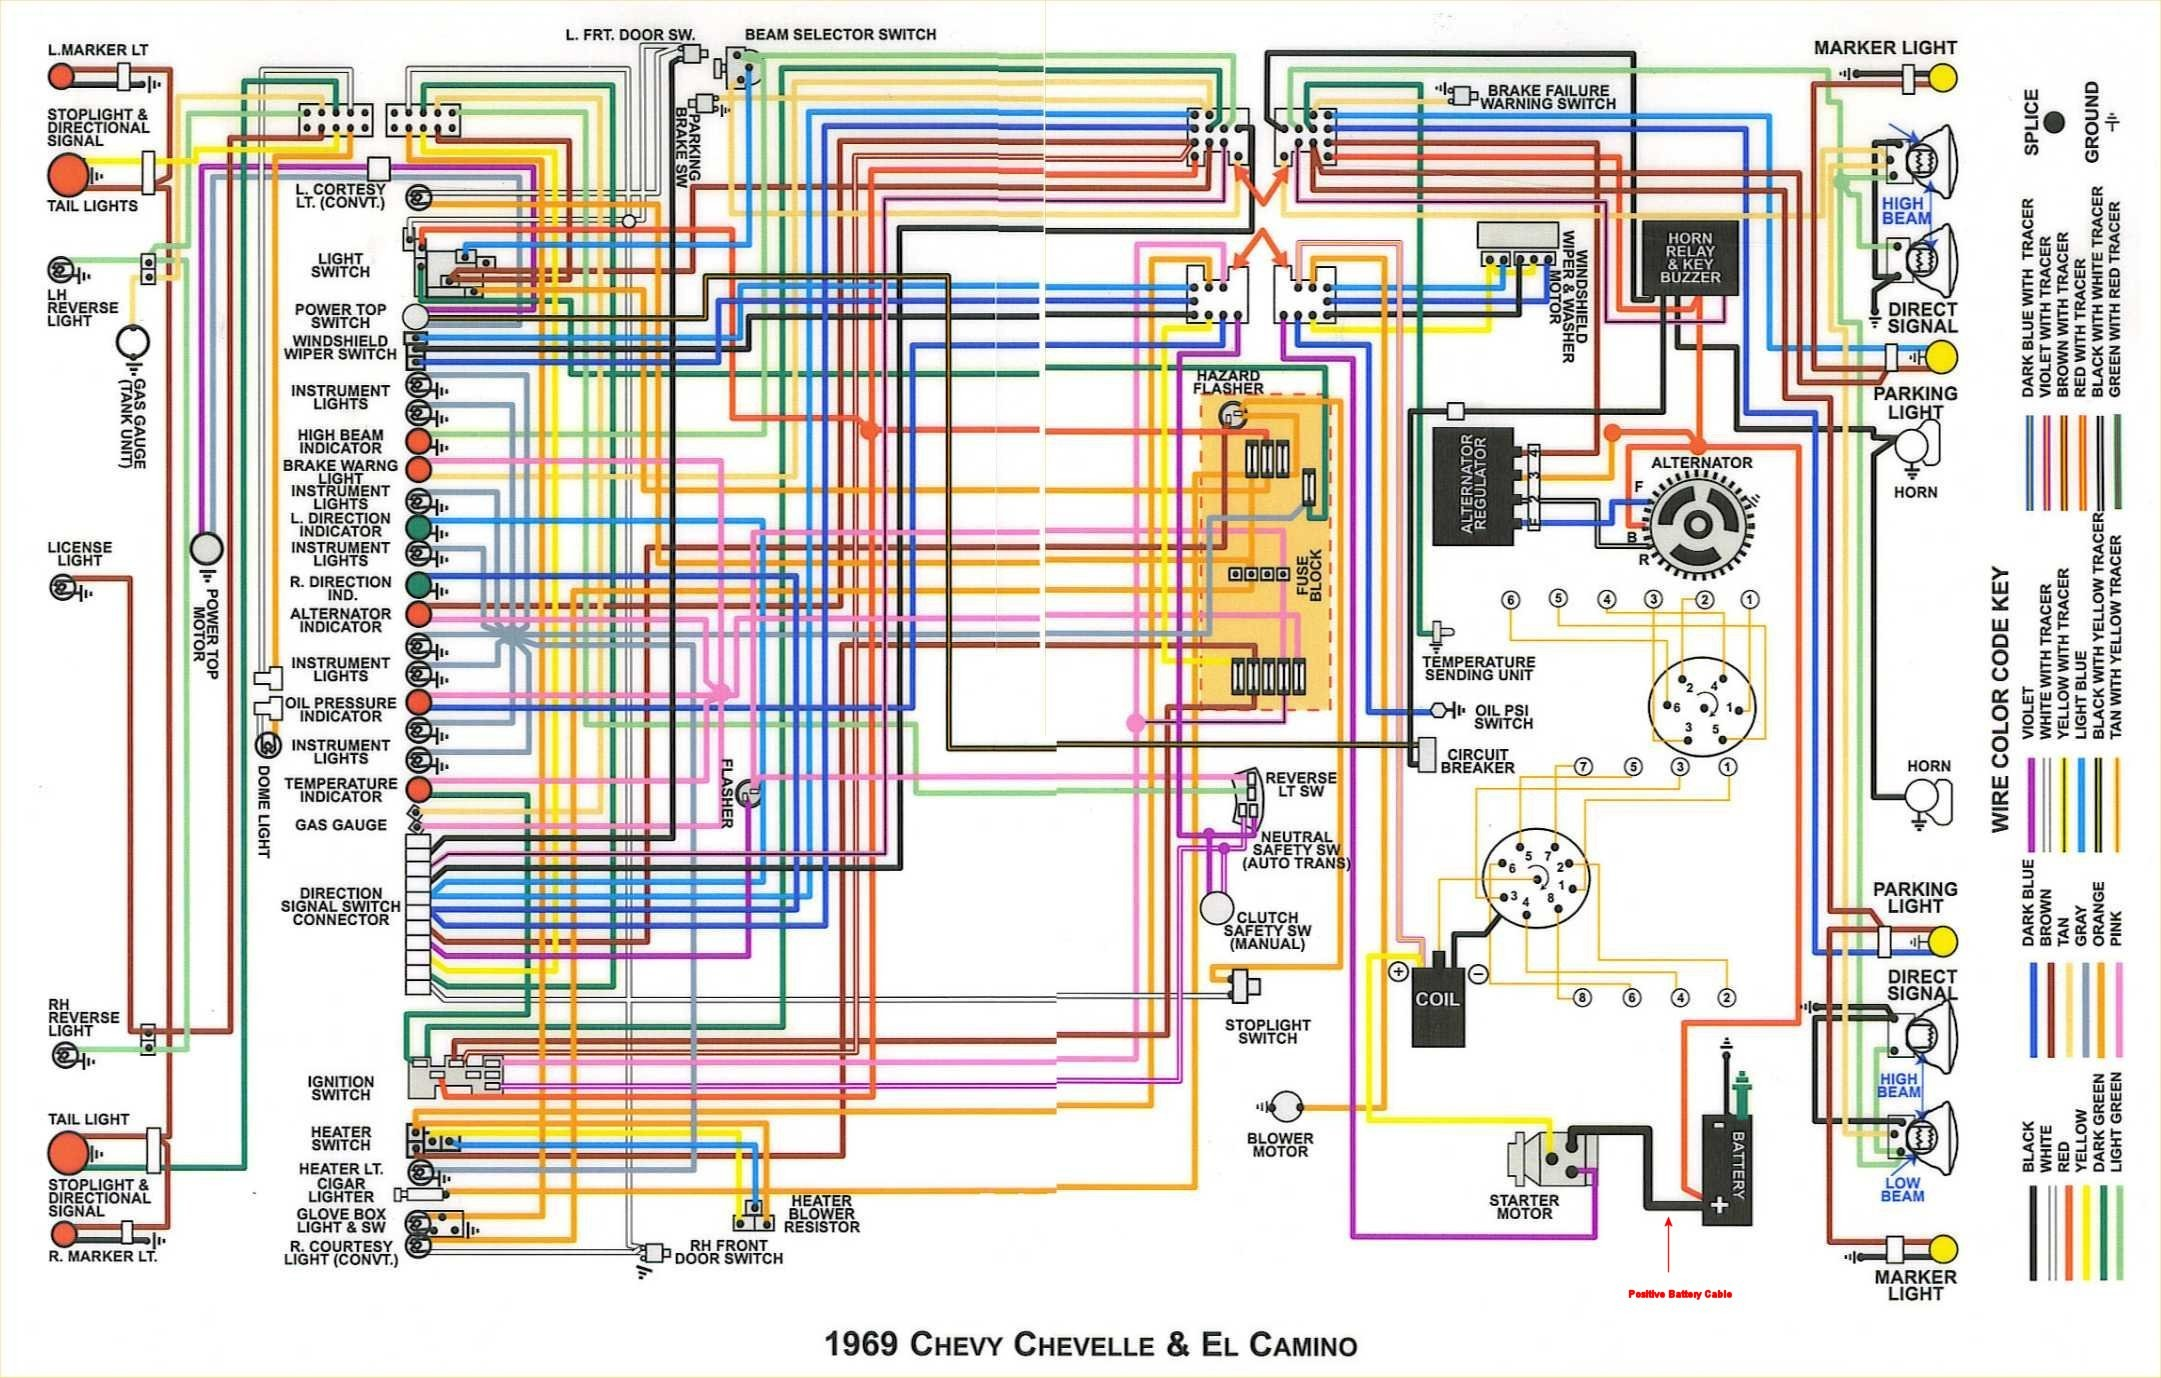 1968 chevelle ss dash wiring diagram trusted wiring diagrams u2022 rh sivamuni com